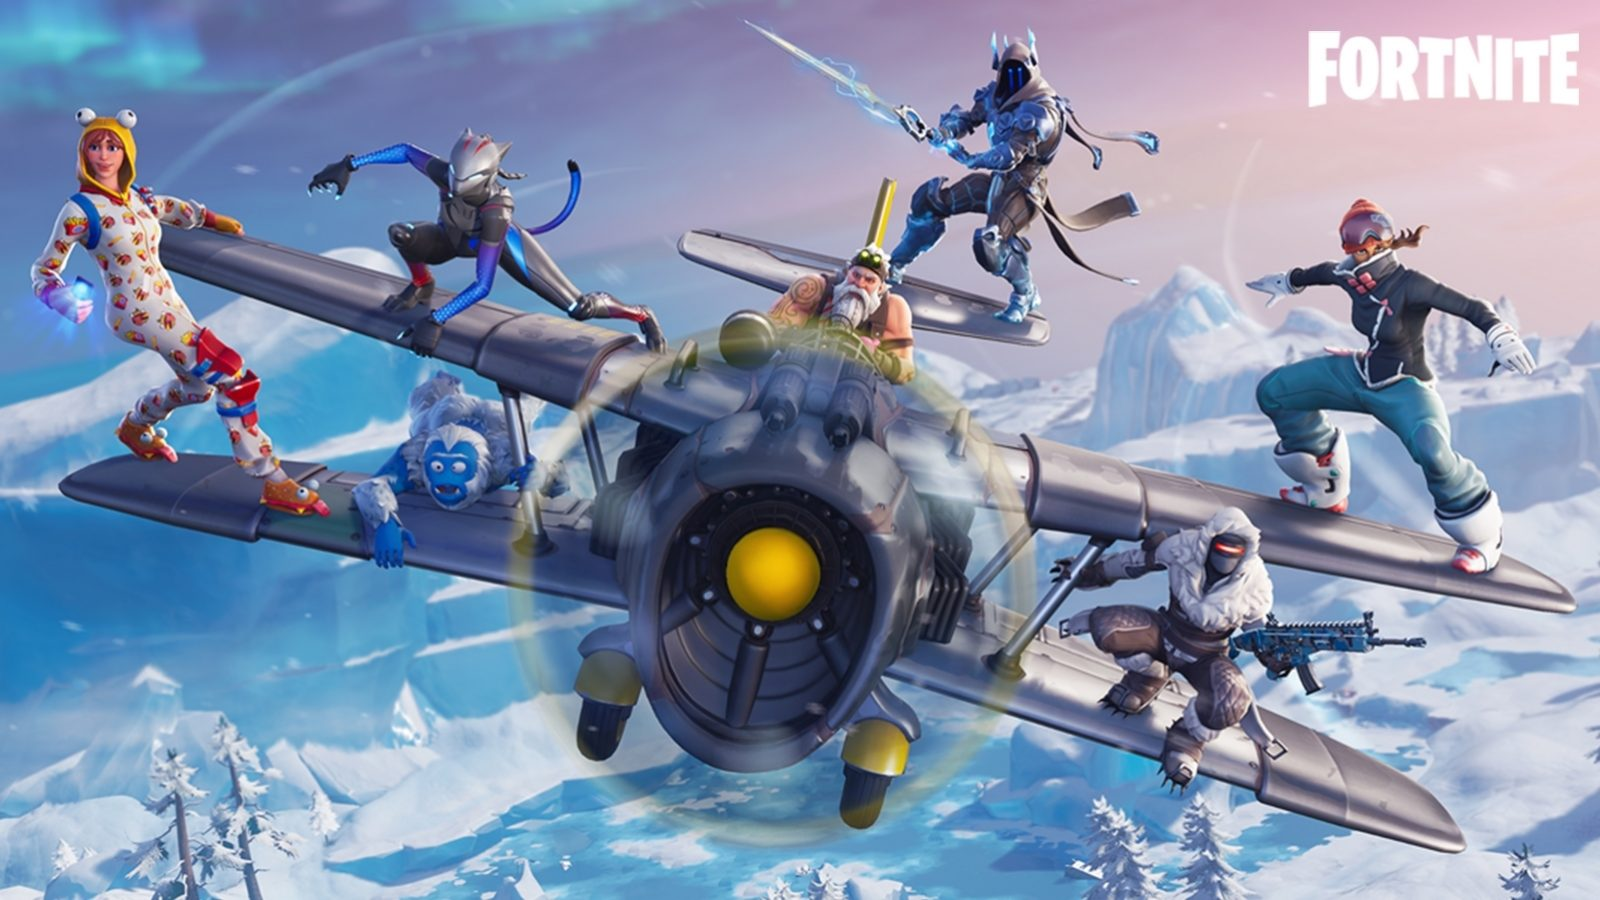 fortnite season 7 frosty flight